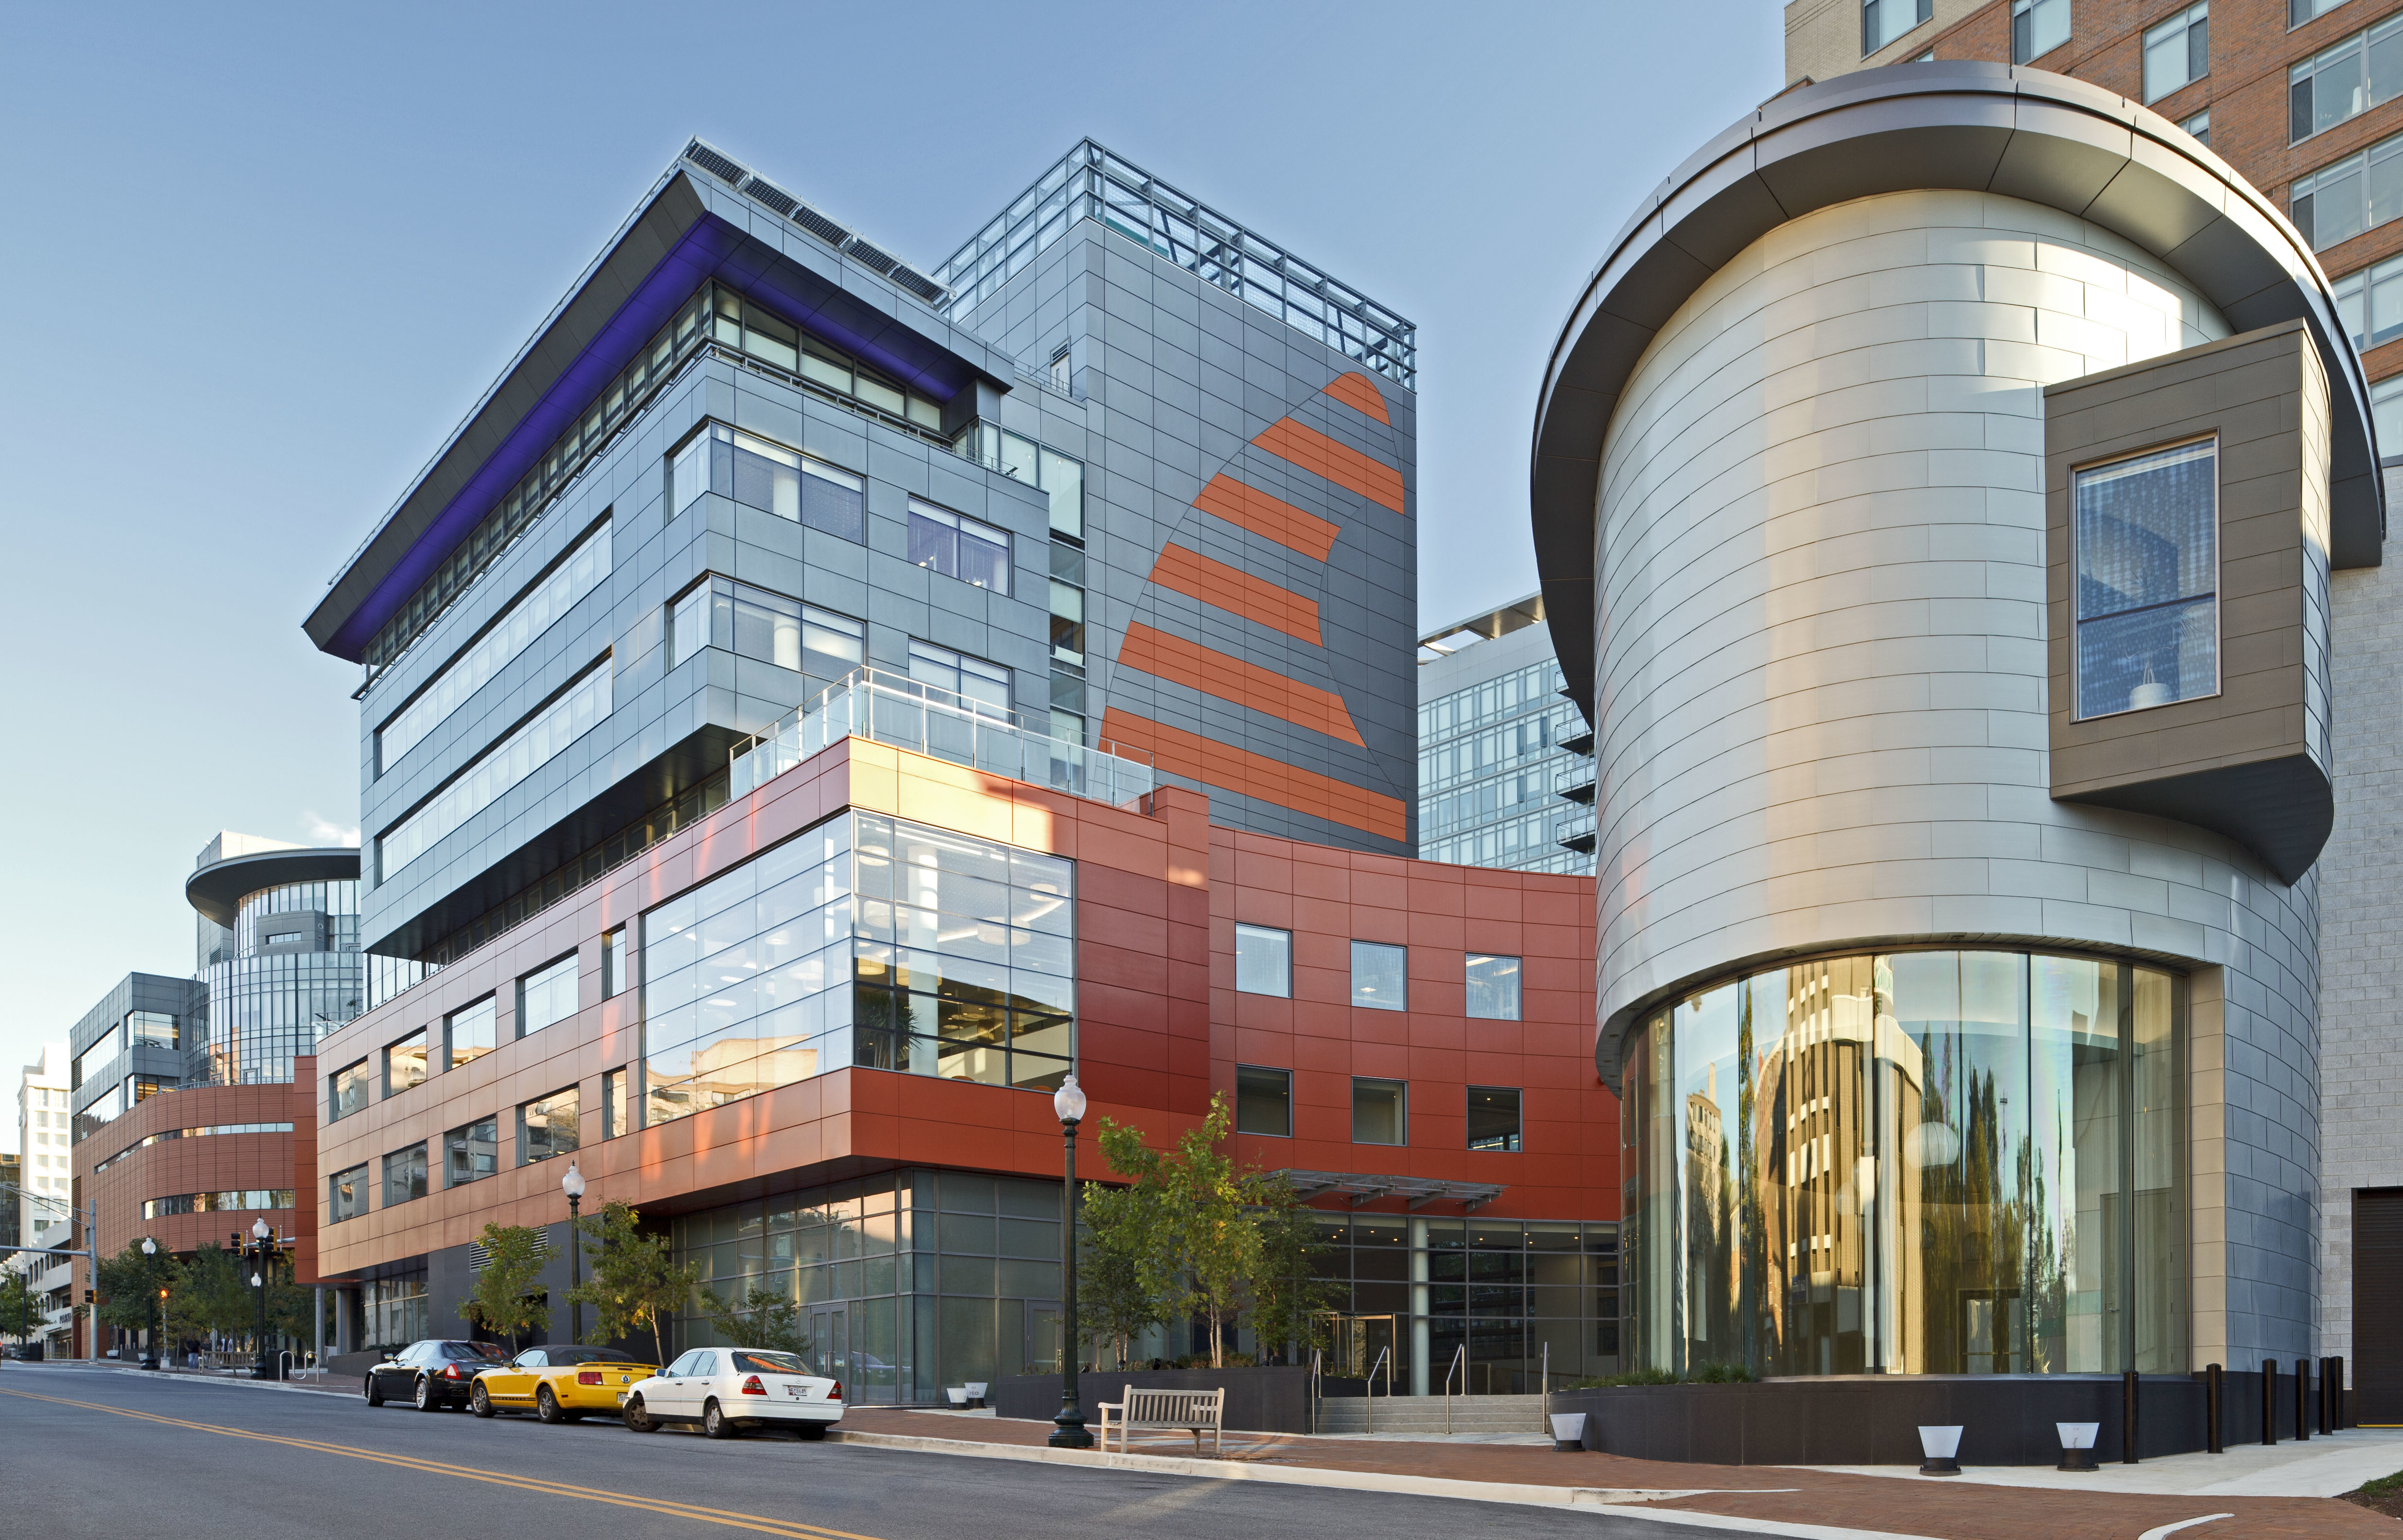 Exterior entrance to United Therapeutics HQ addition from street.